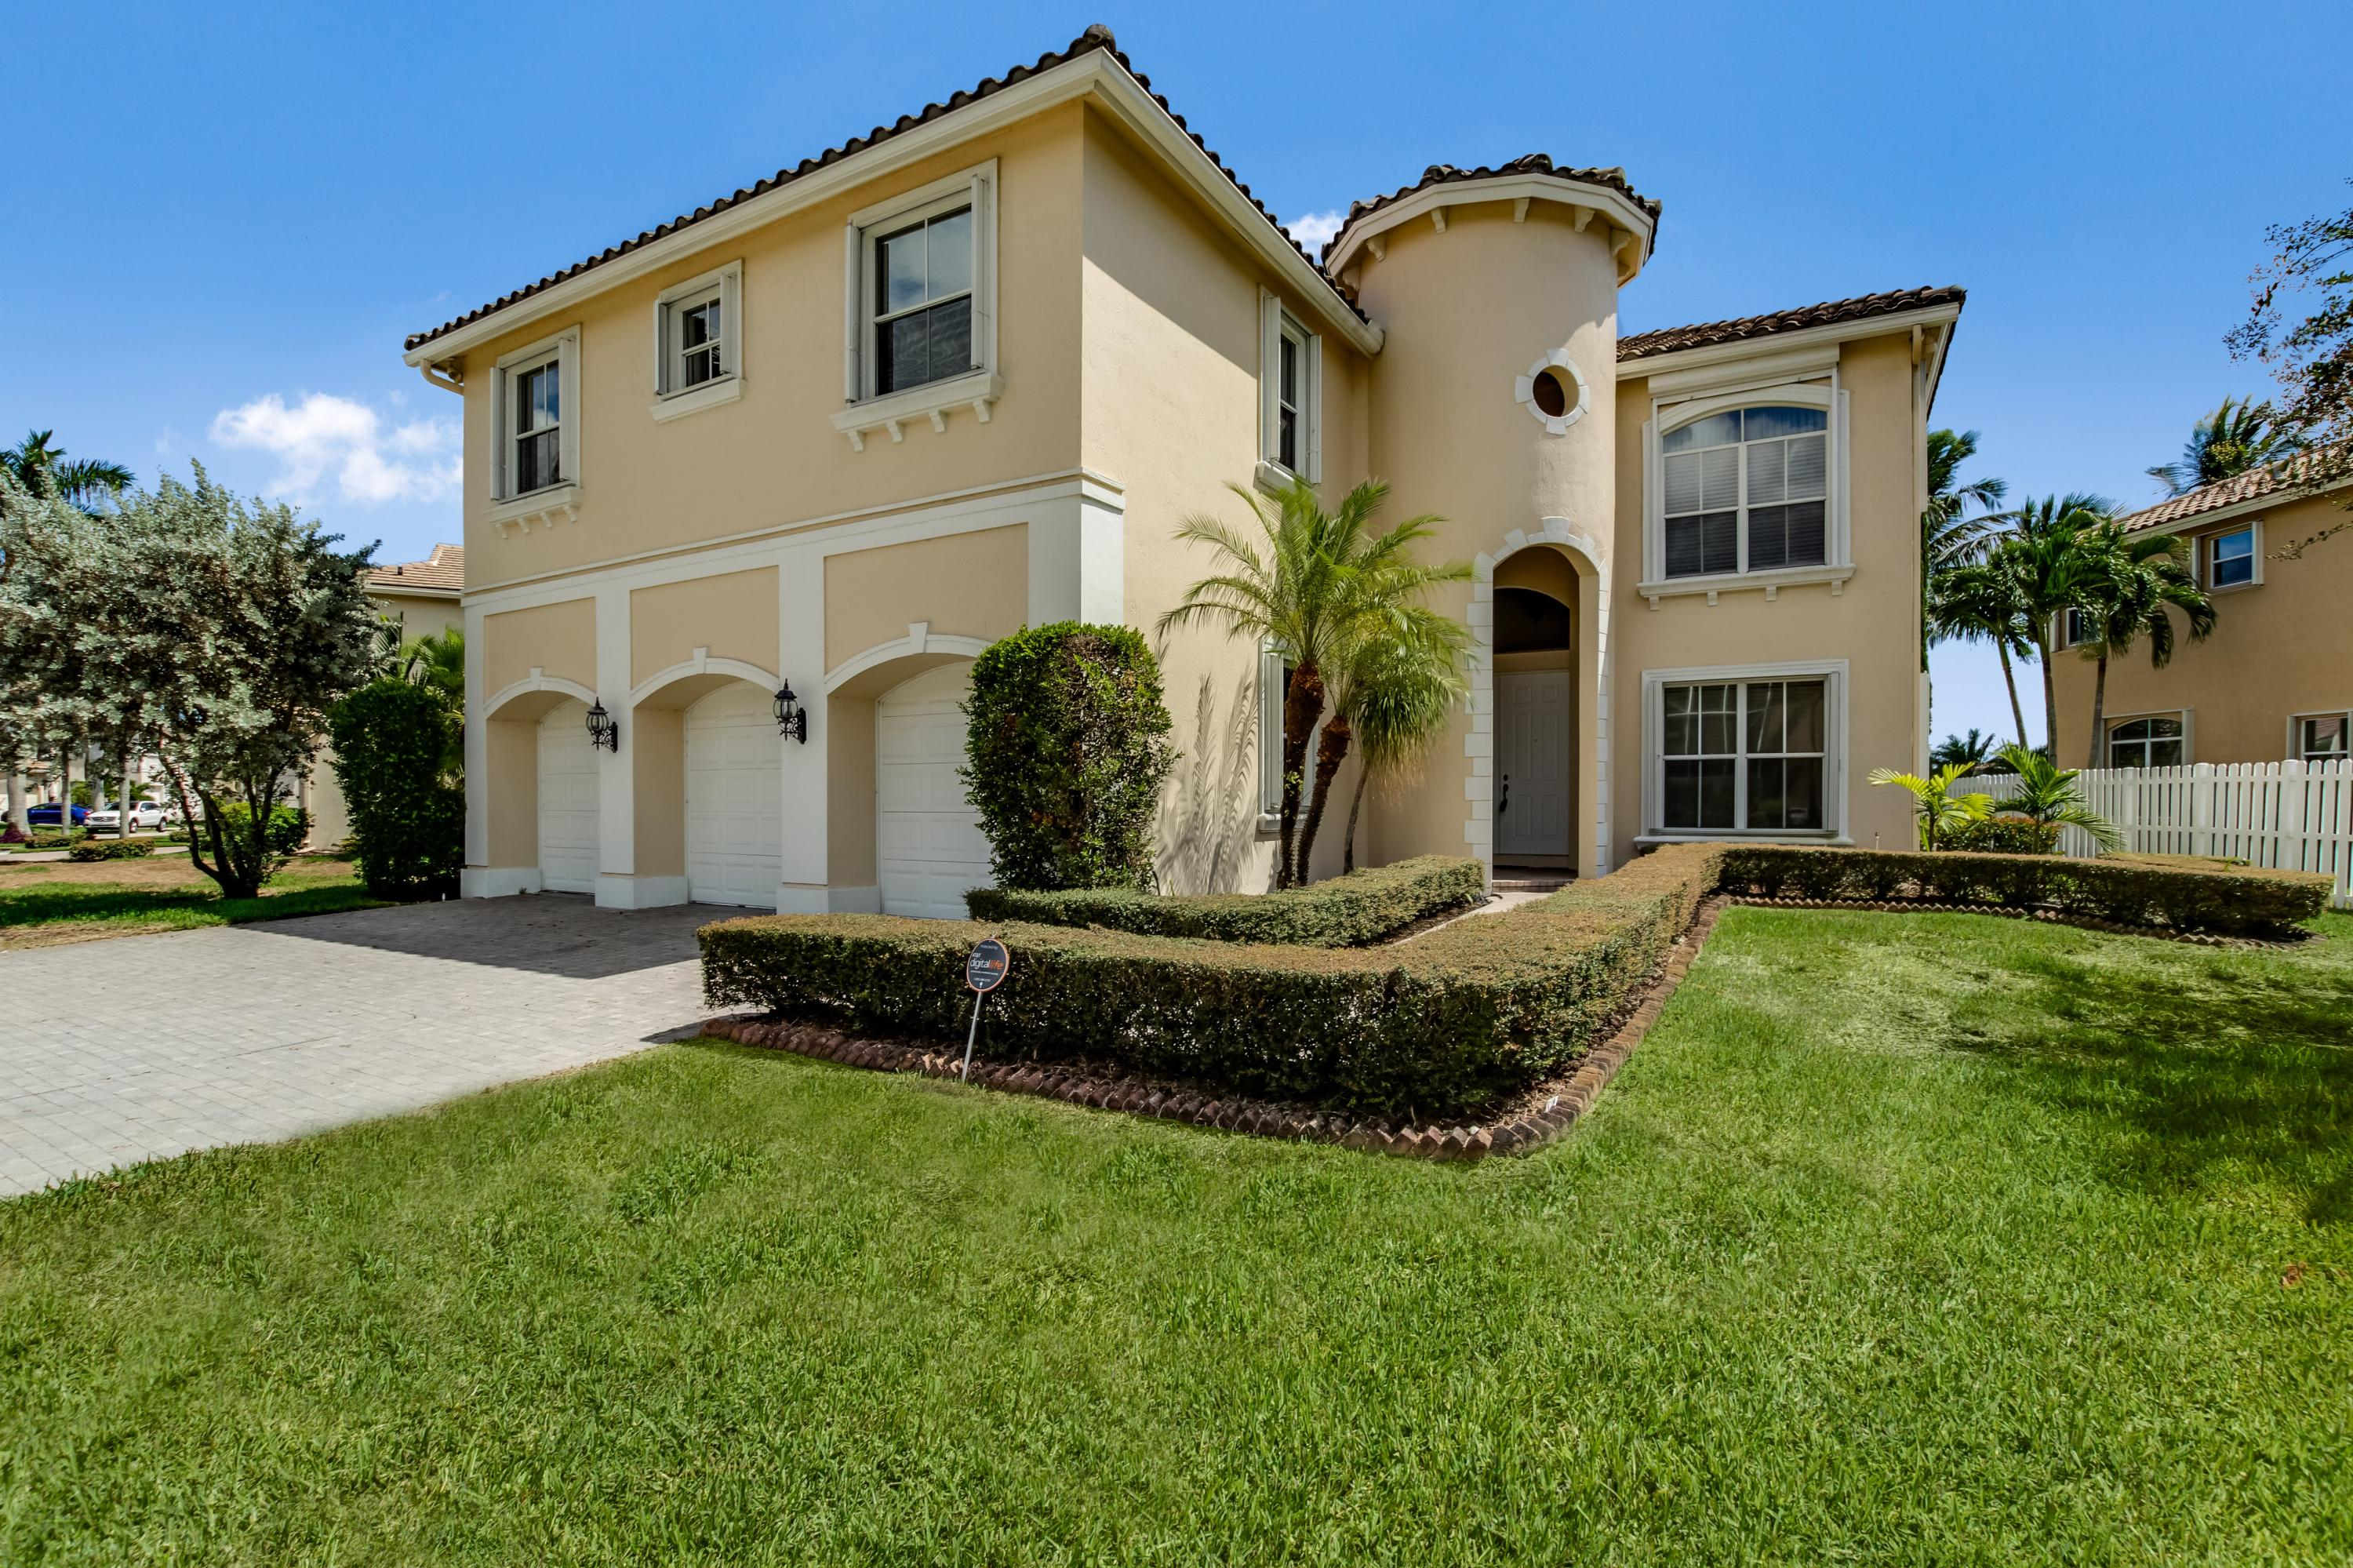 6845 Houlton Circle, Lake Worth, Florida 33467, 5 Bedrooms Bedrooms, ,3.1 BathroomsBathrooms,Single Family,For Sale,Journeys End,Houlton,RX-10469086